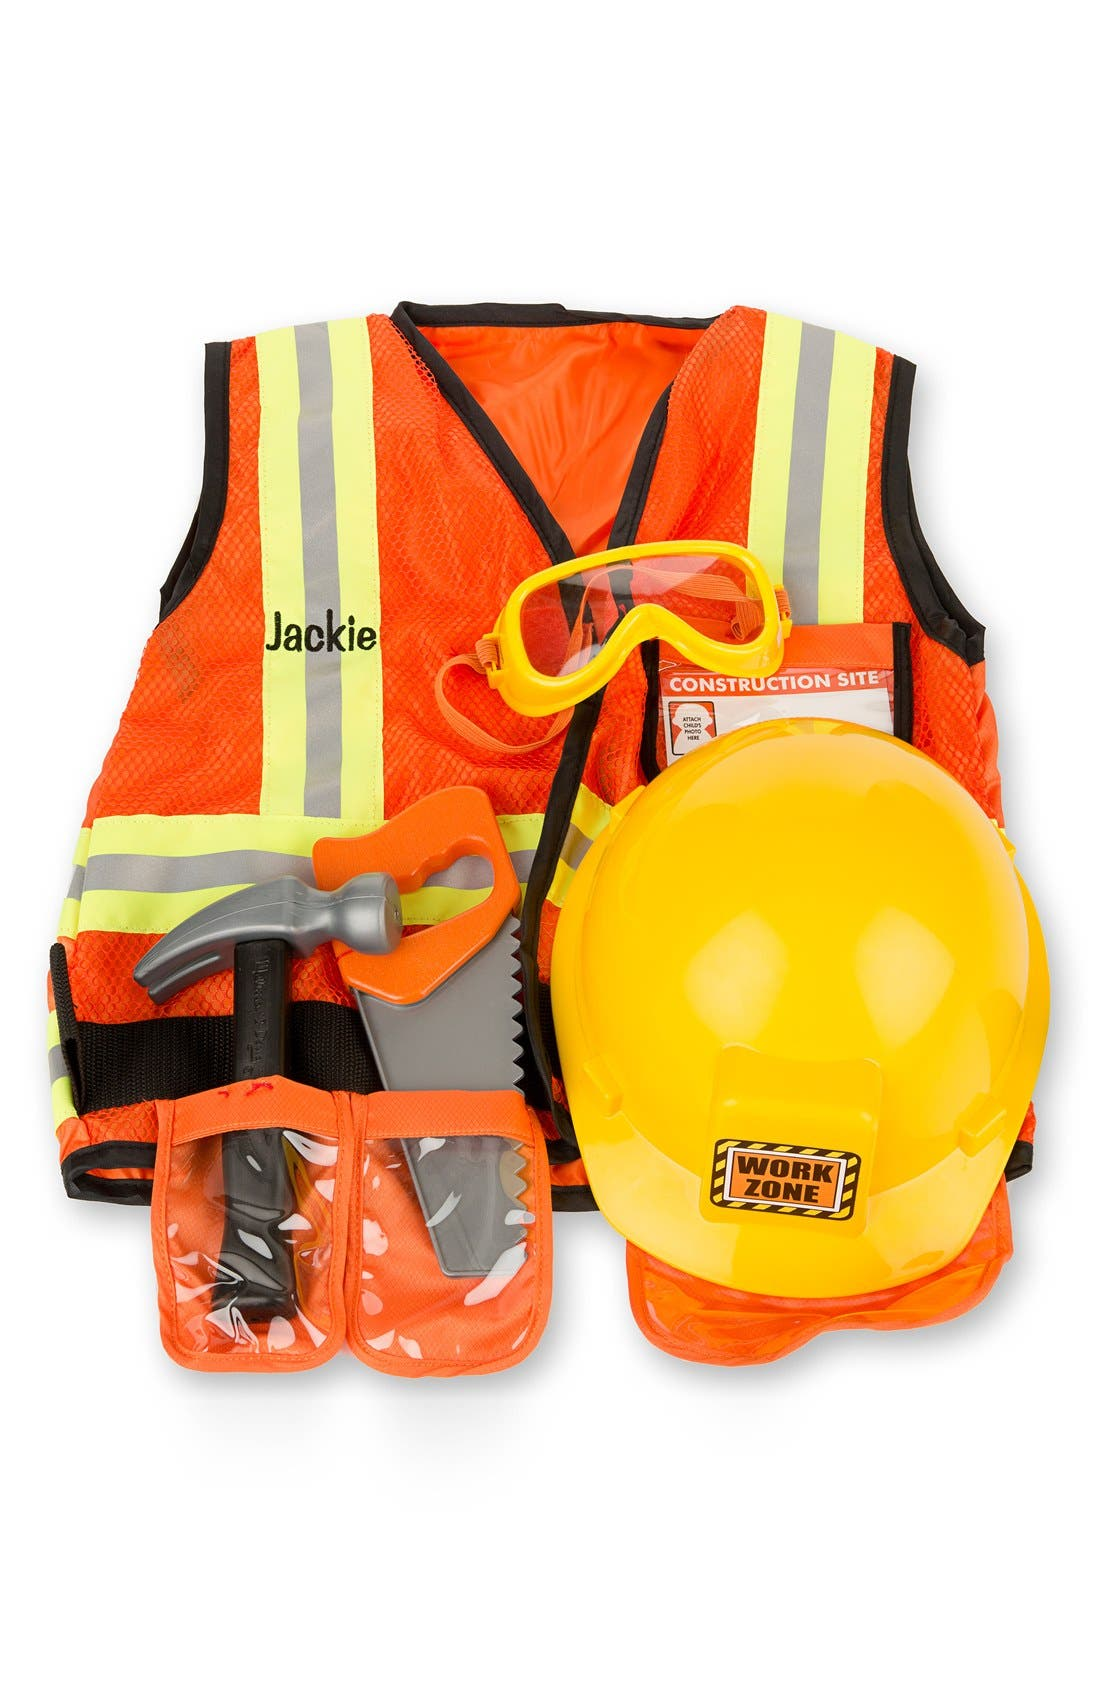 'Construction Worker' Personalized Costume Set,                             Main thumbnail 1, color,                             800